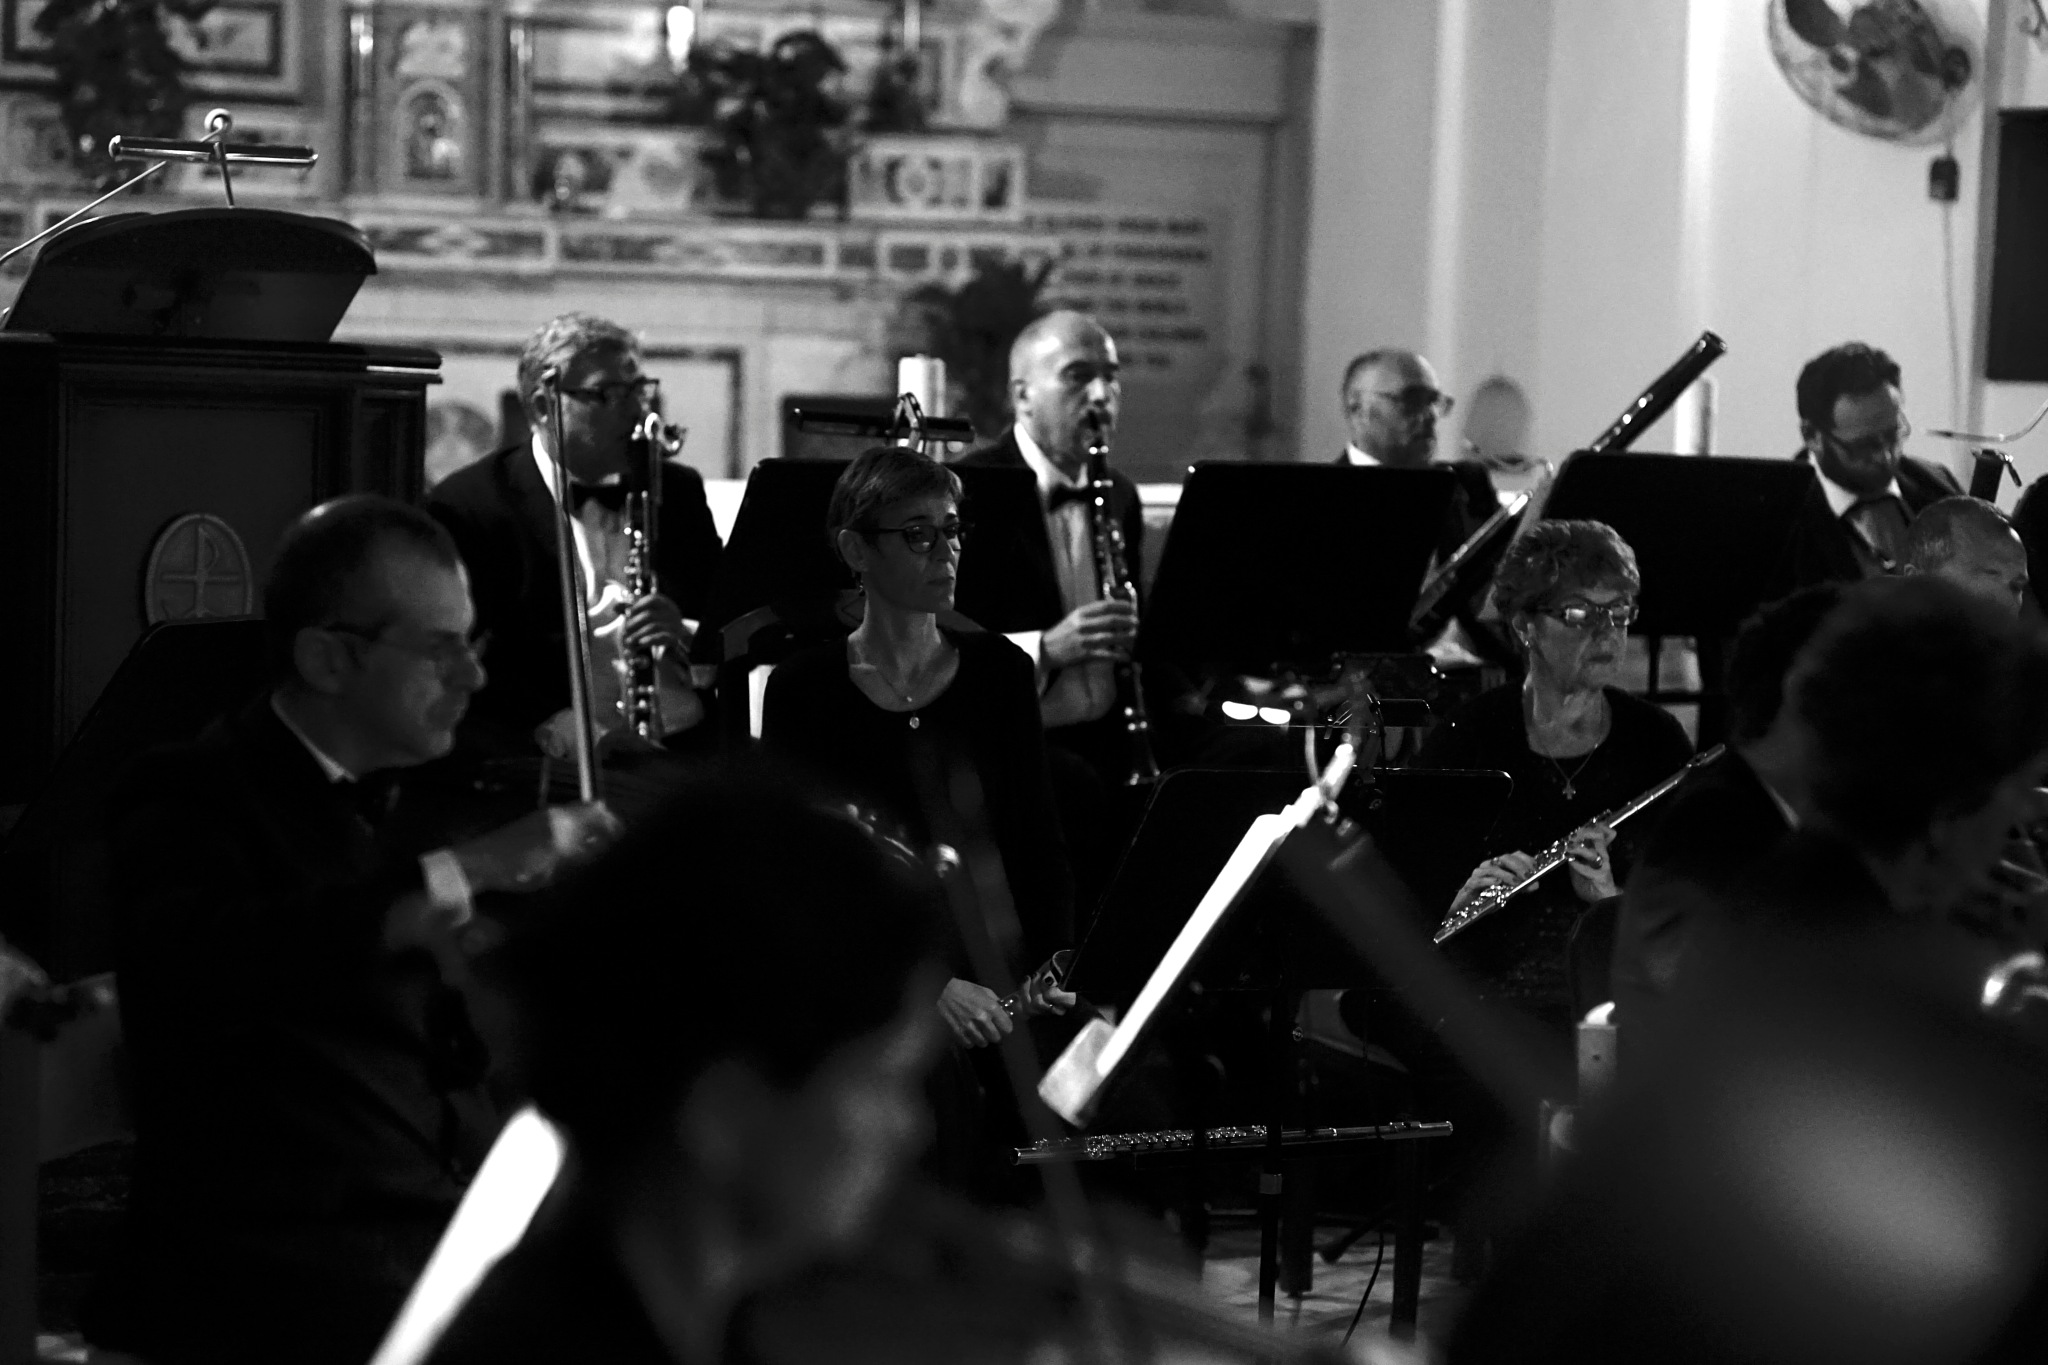 The Cyprus Symphony Orchestra by gpo1961